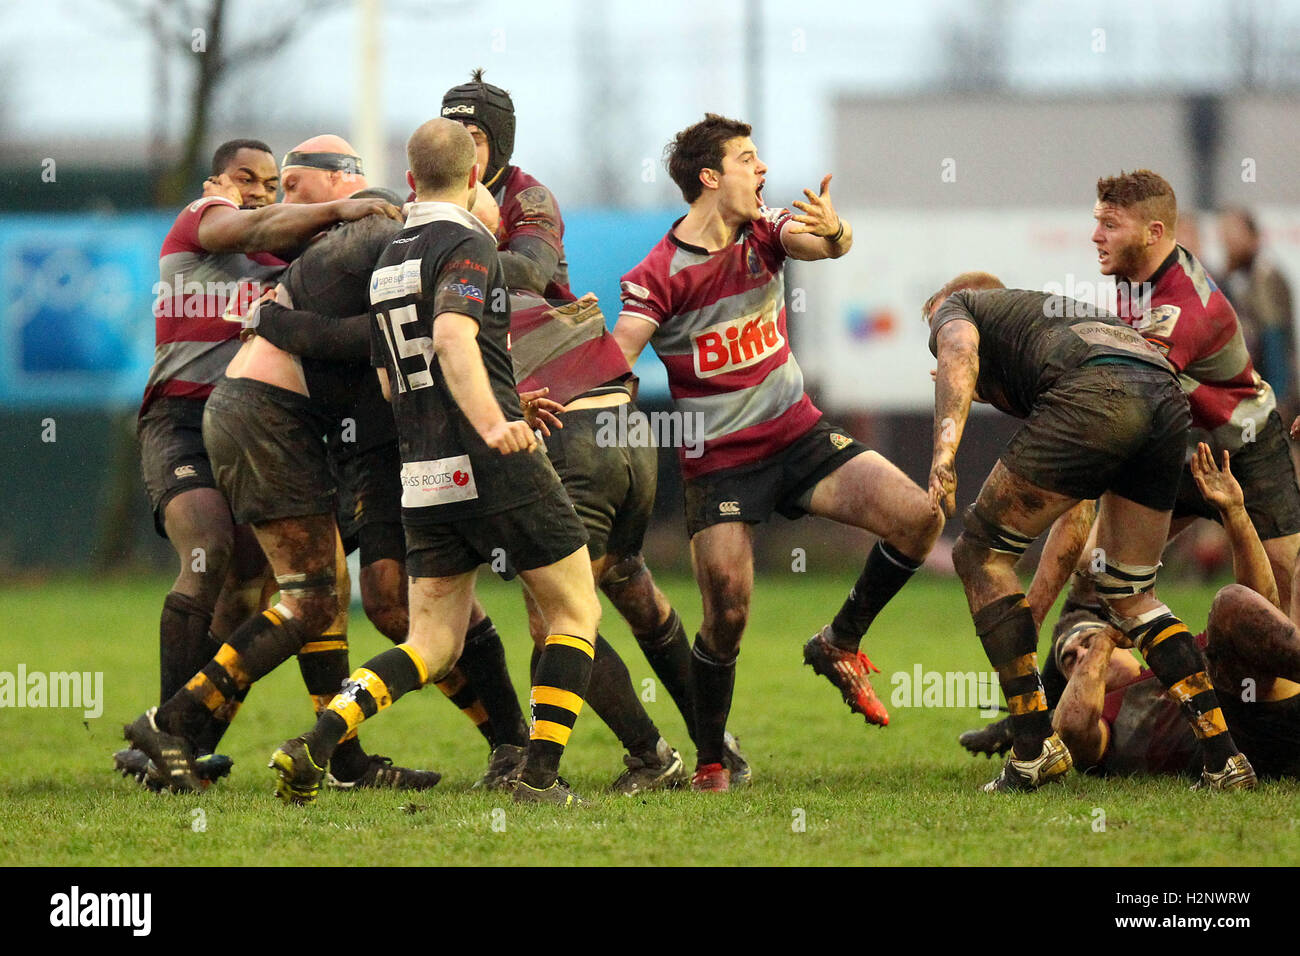 Tempers flare during the first half resulting in the sending off of a Barking player - Barking RFC vs Tring RFC - Stock Image